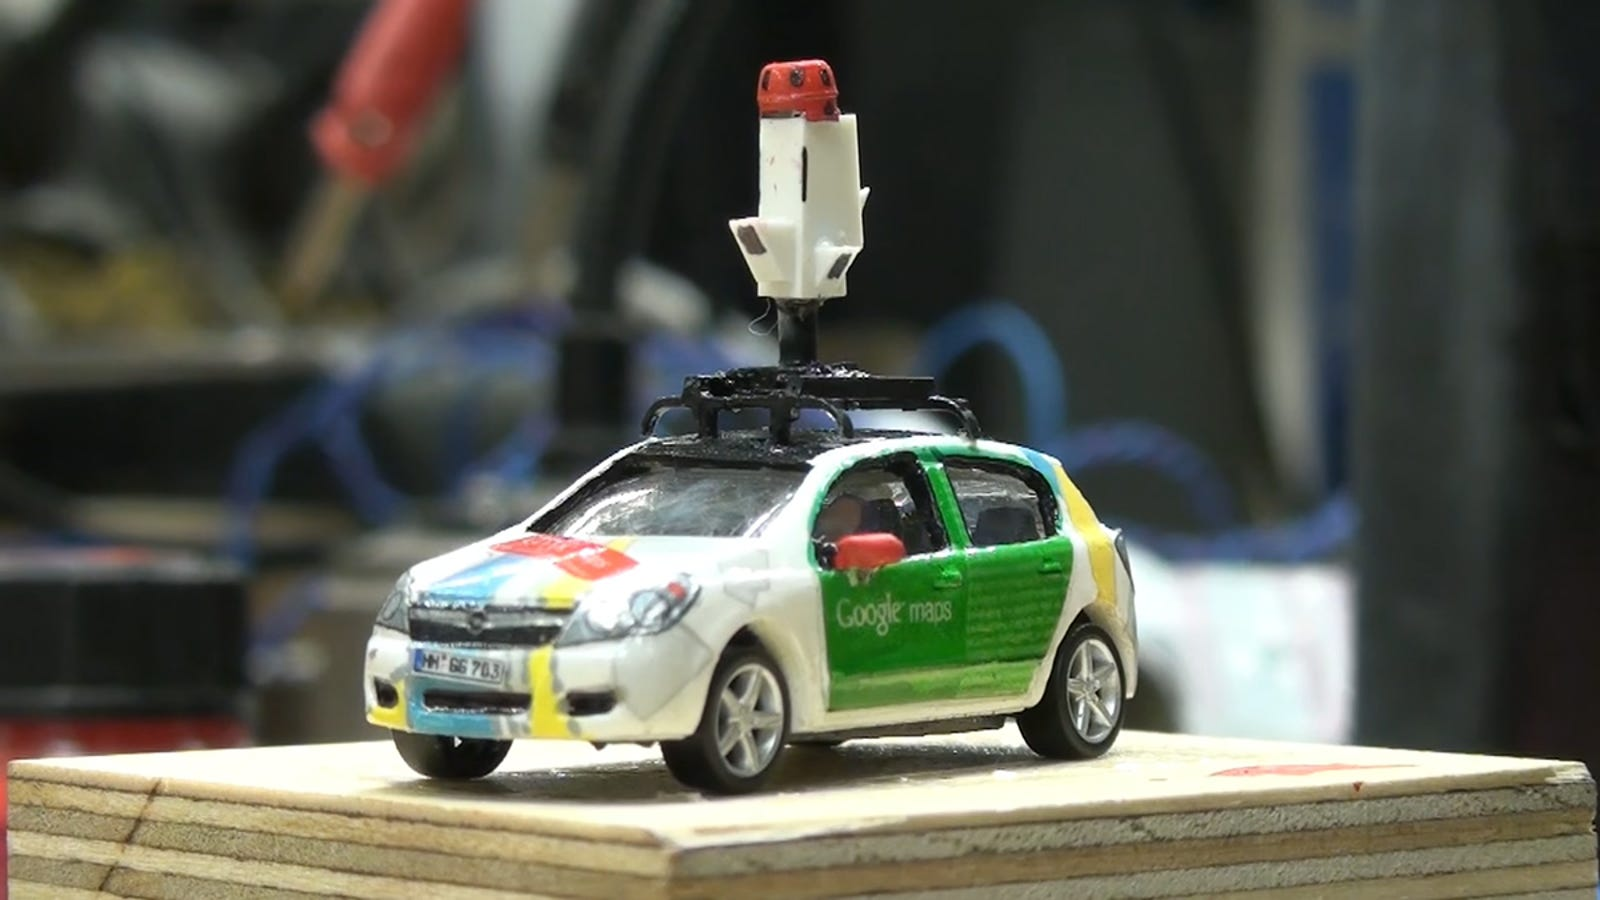 9 Uses for Street View Besides Checking Out Your Old Neighborhood